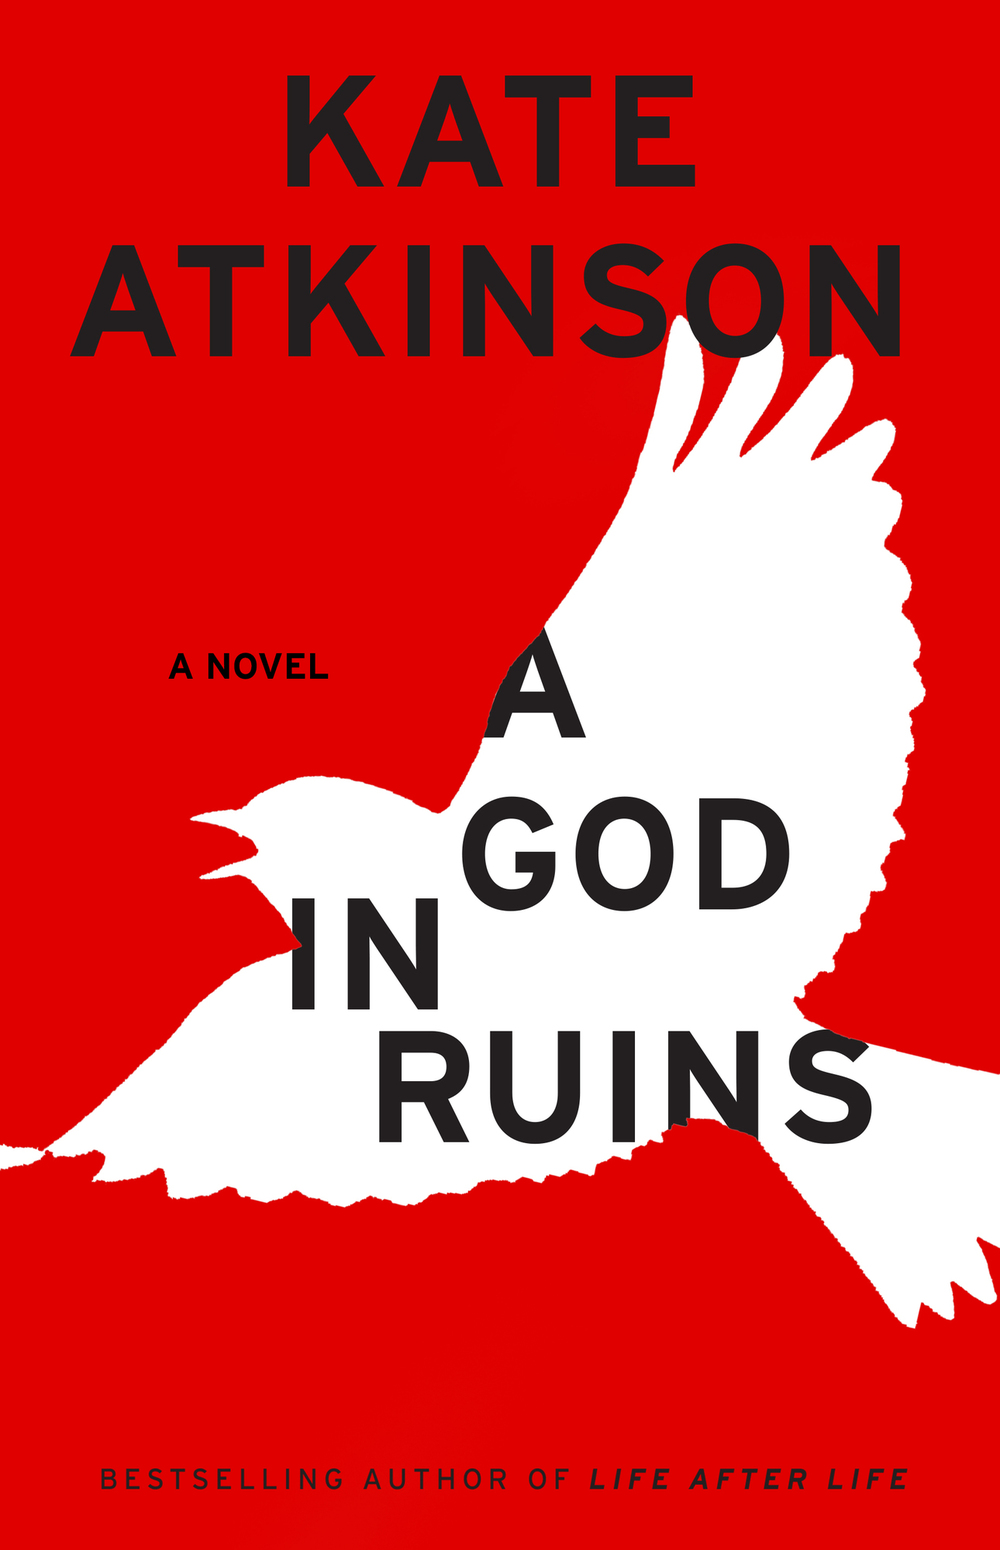 All of It - November 2015 Book Report - A God In Ruins